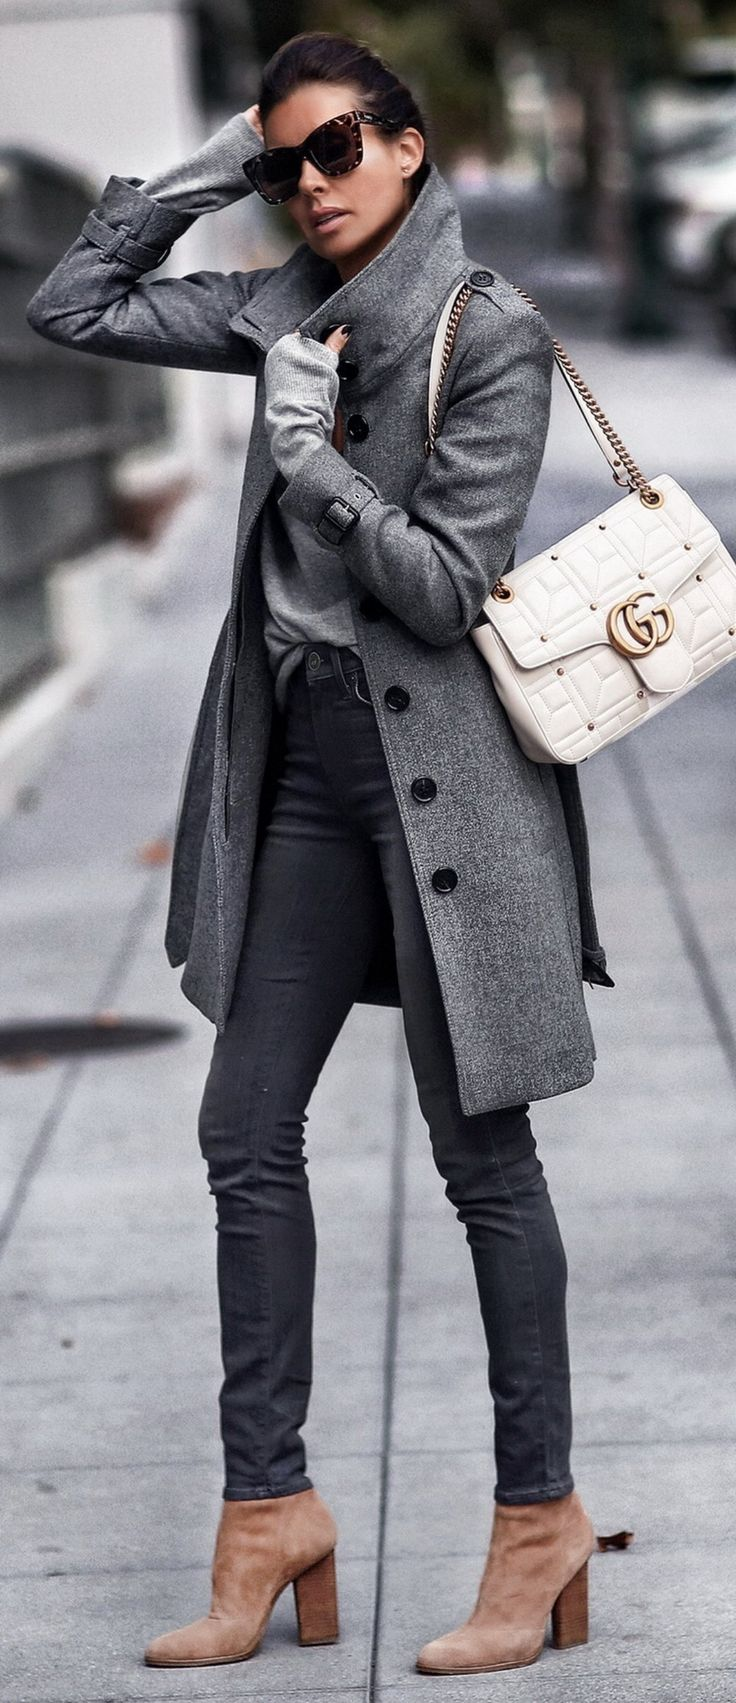 Coat: Burberry Sweater: Carbon 38 (Similar from AG) Bralette: Cosabella Jeans: PAIGE Shoes: Alexander Wang Bag: Gucci